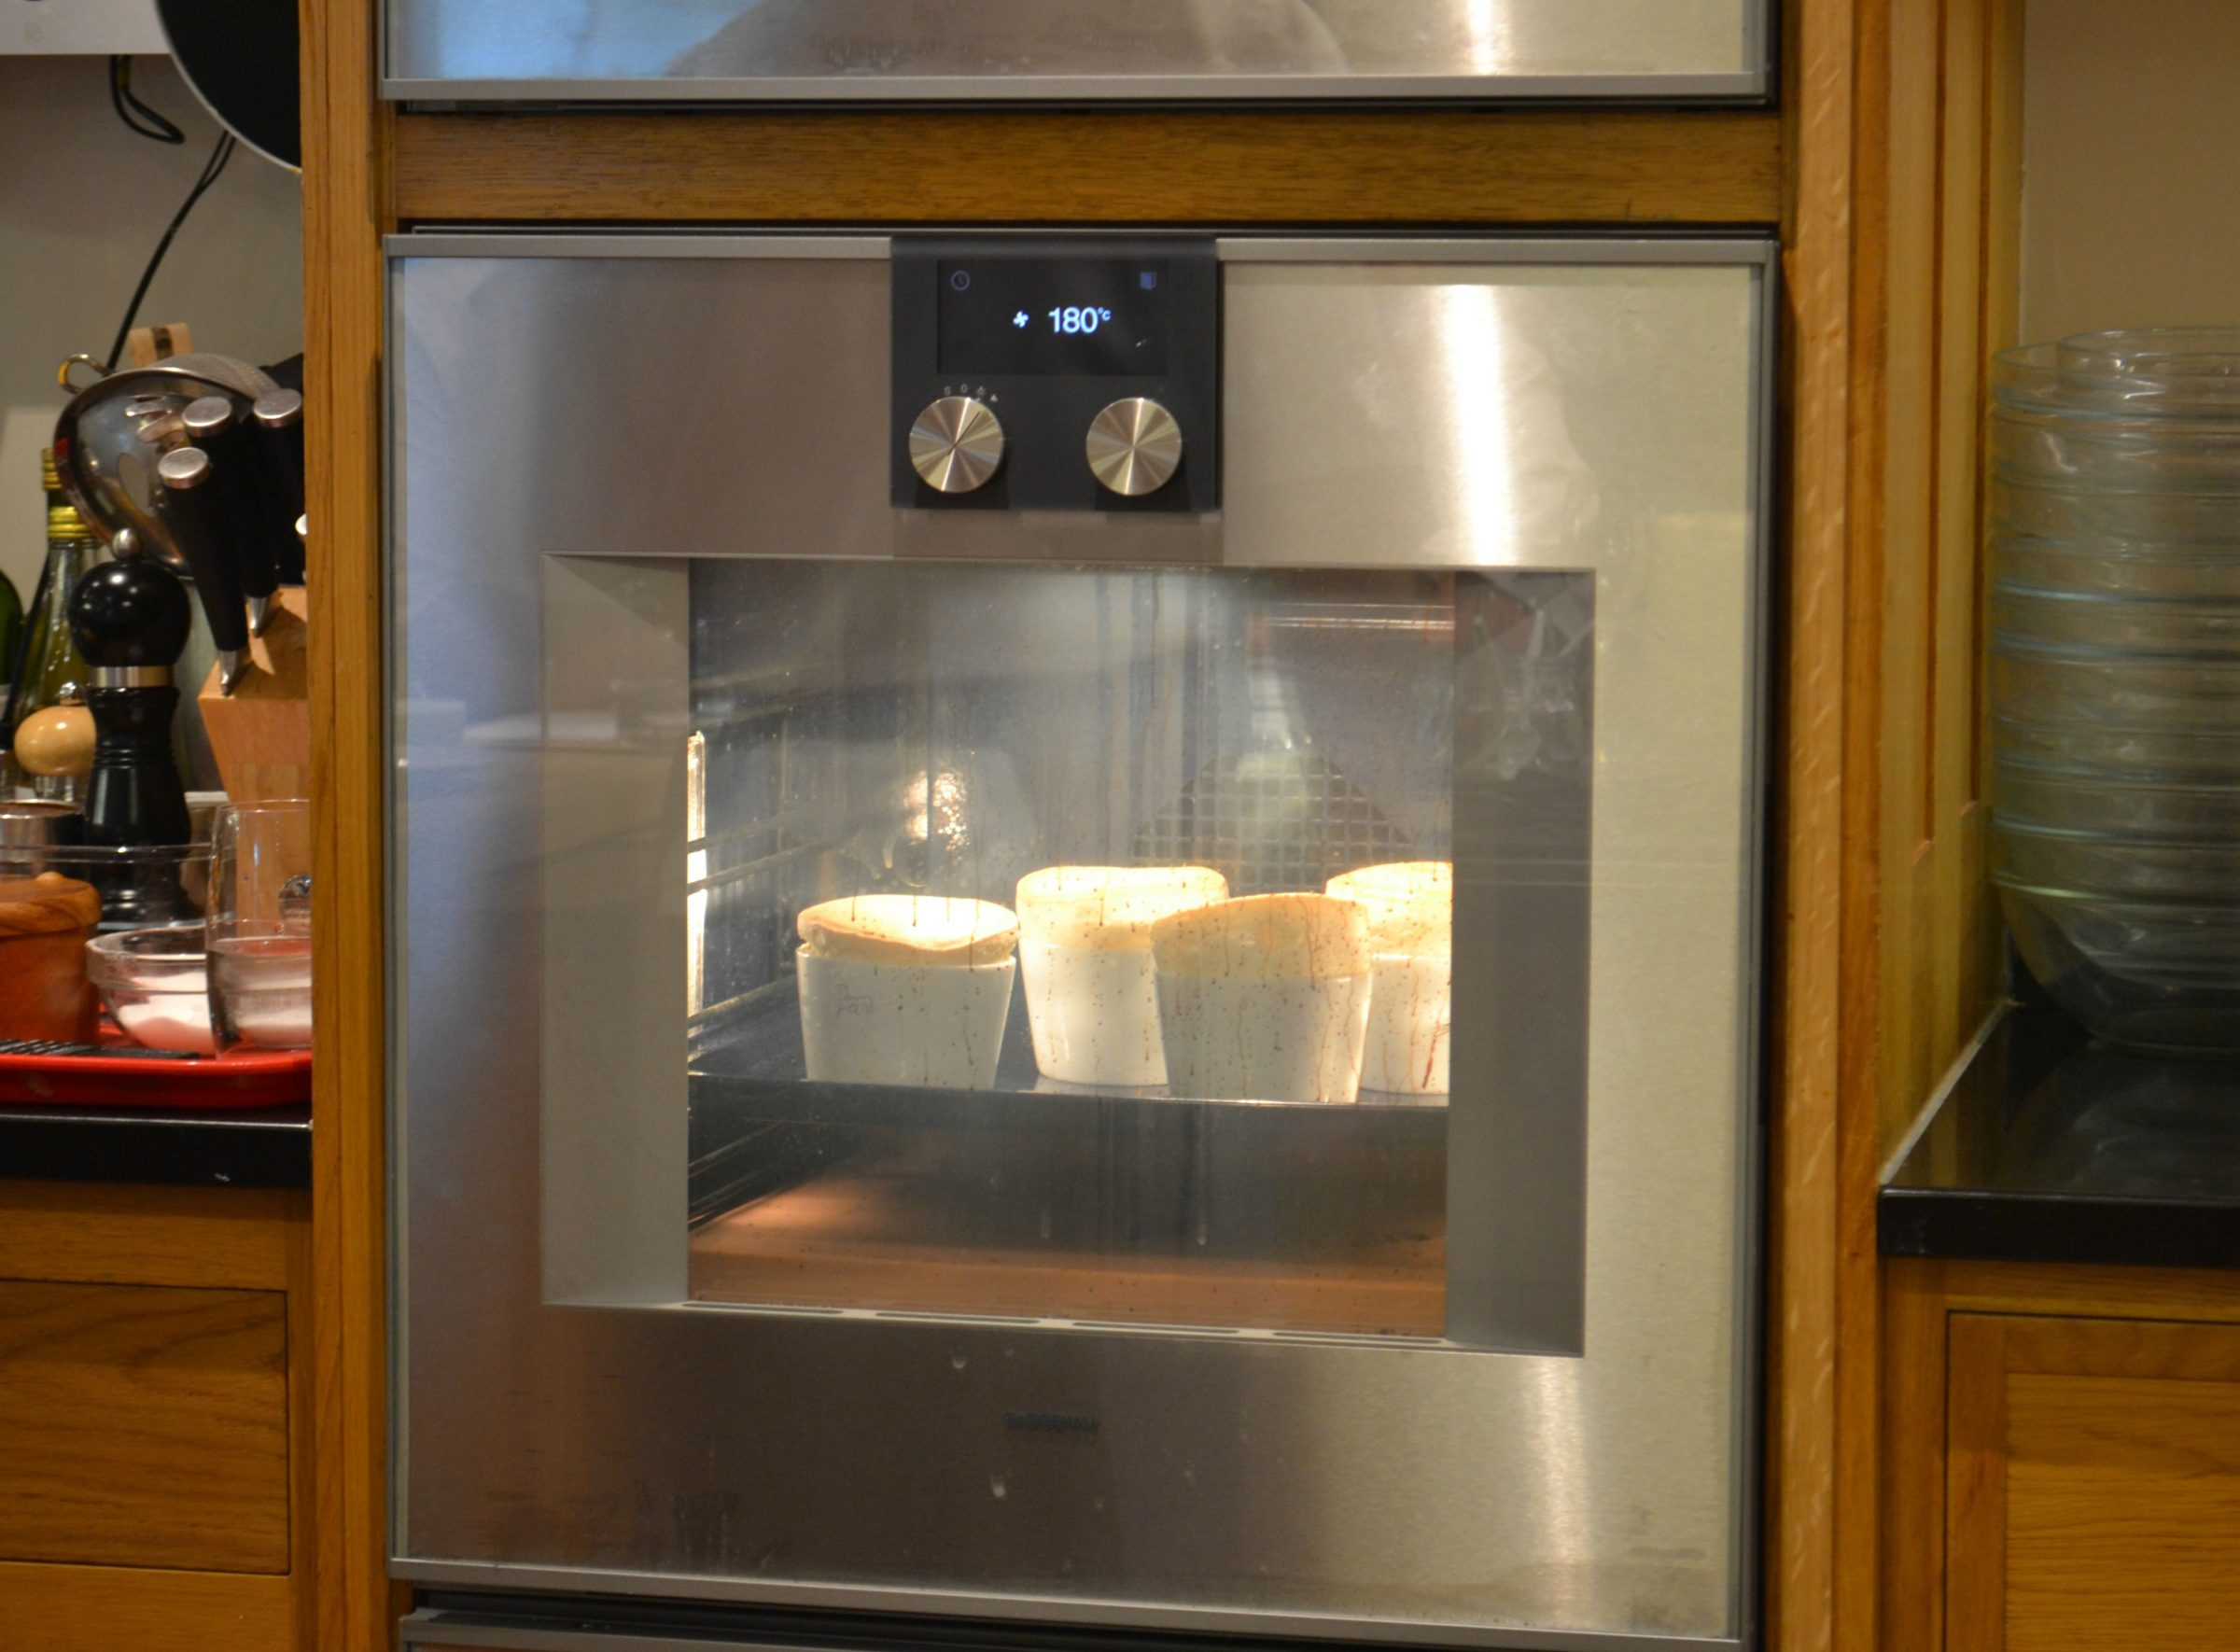 Cooking with Gaggenau - Raymond Blanc Cooker School - Humphrey Munson Blog - Recipes - Souffle 3